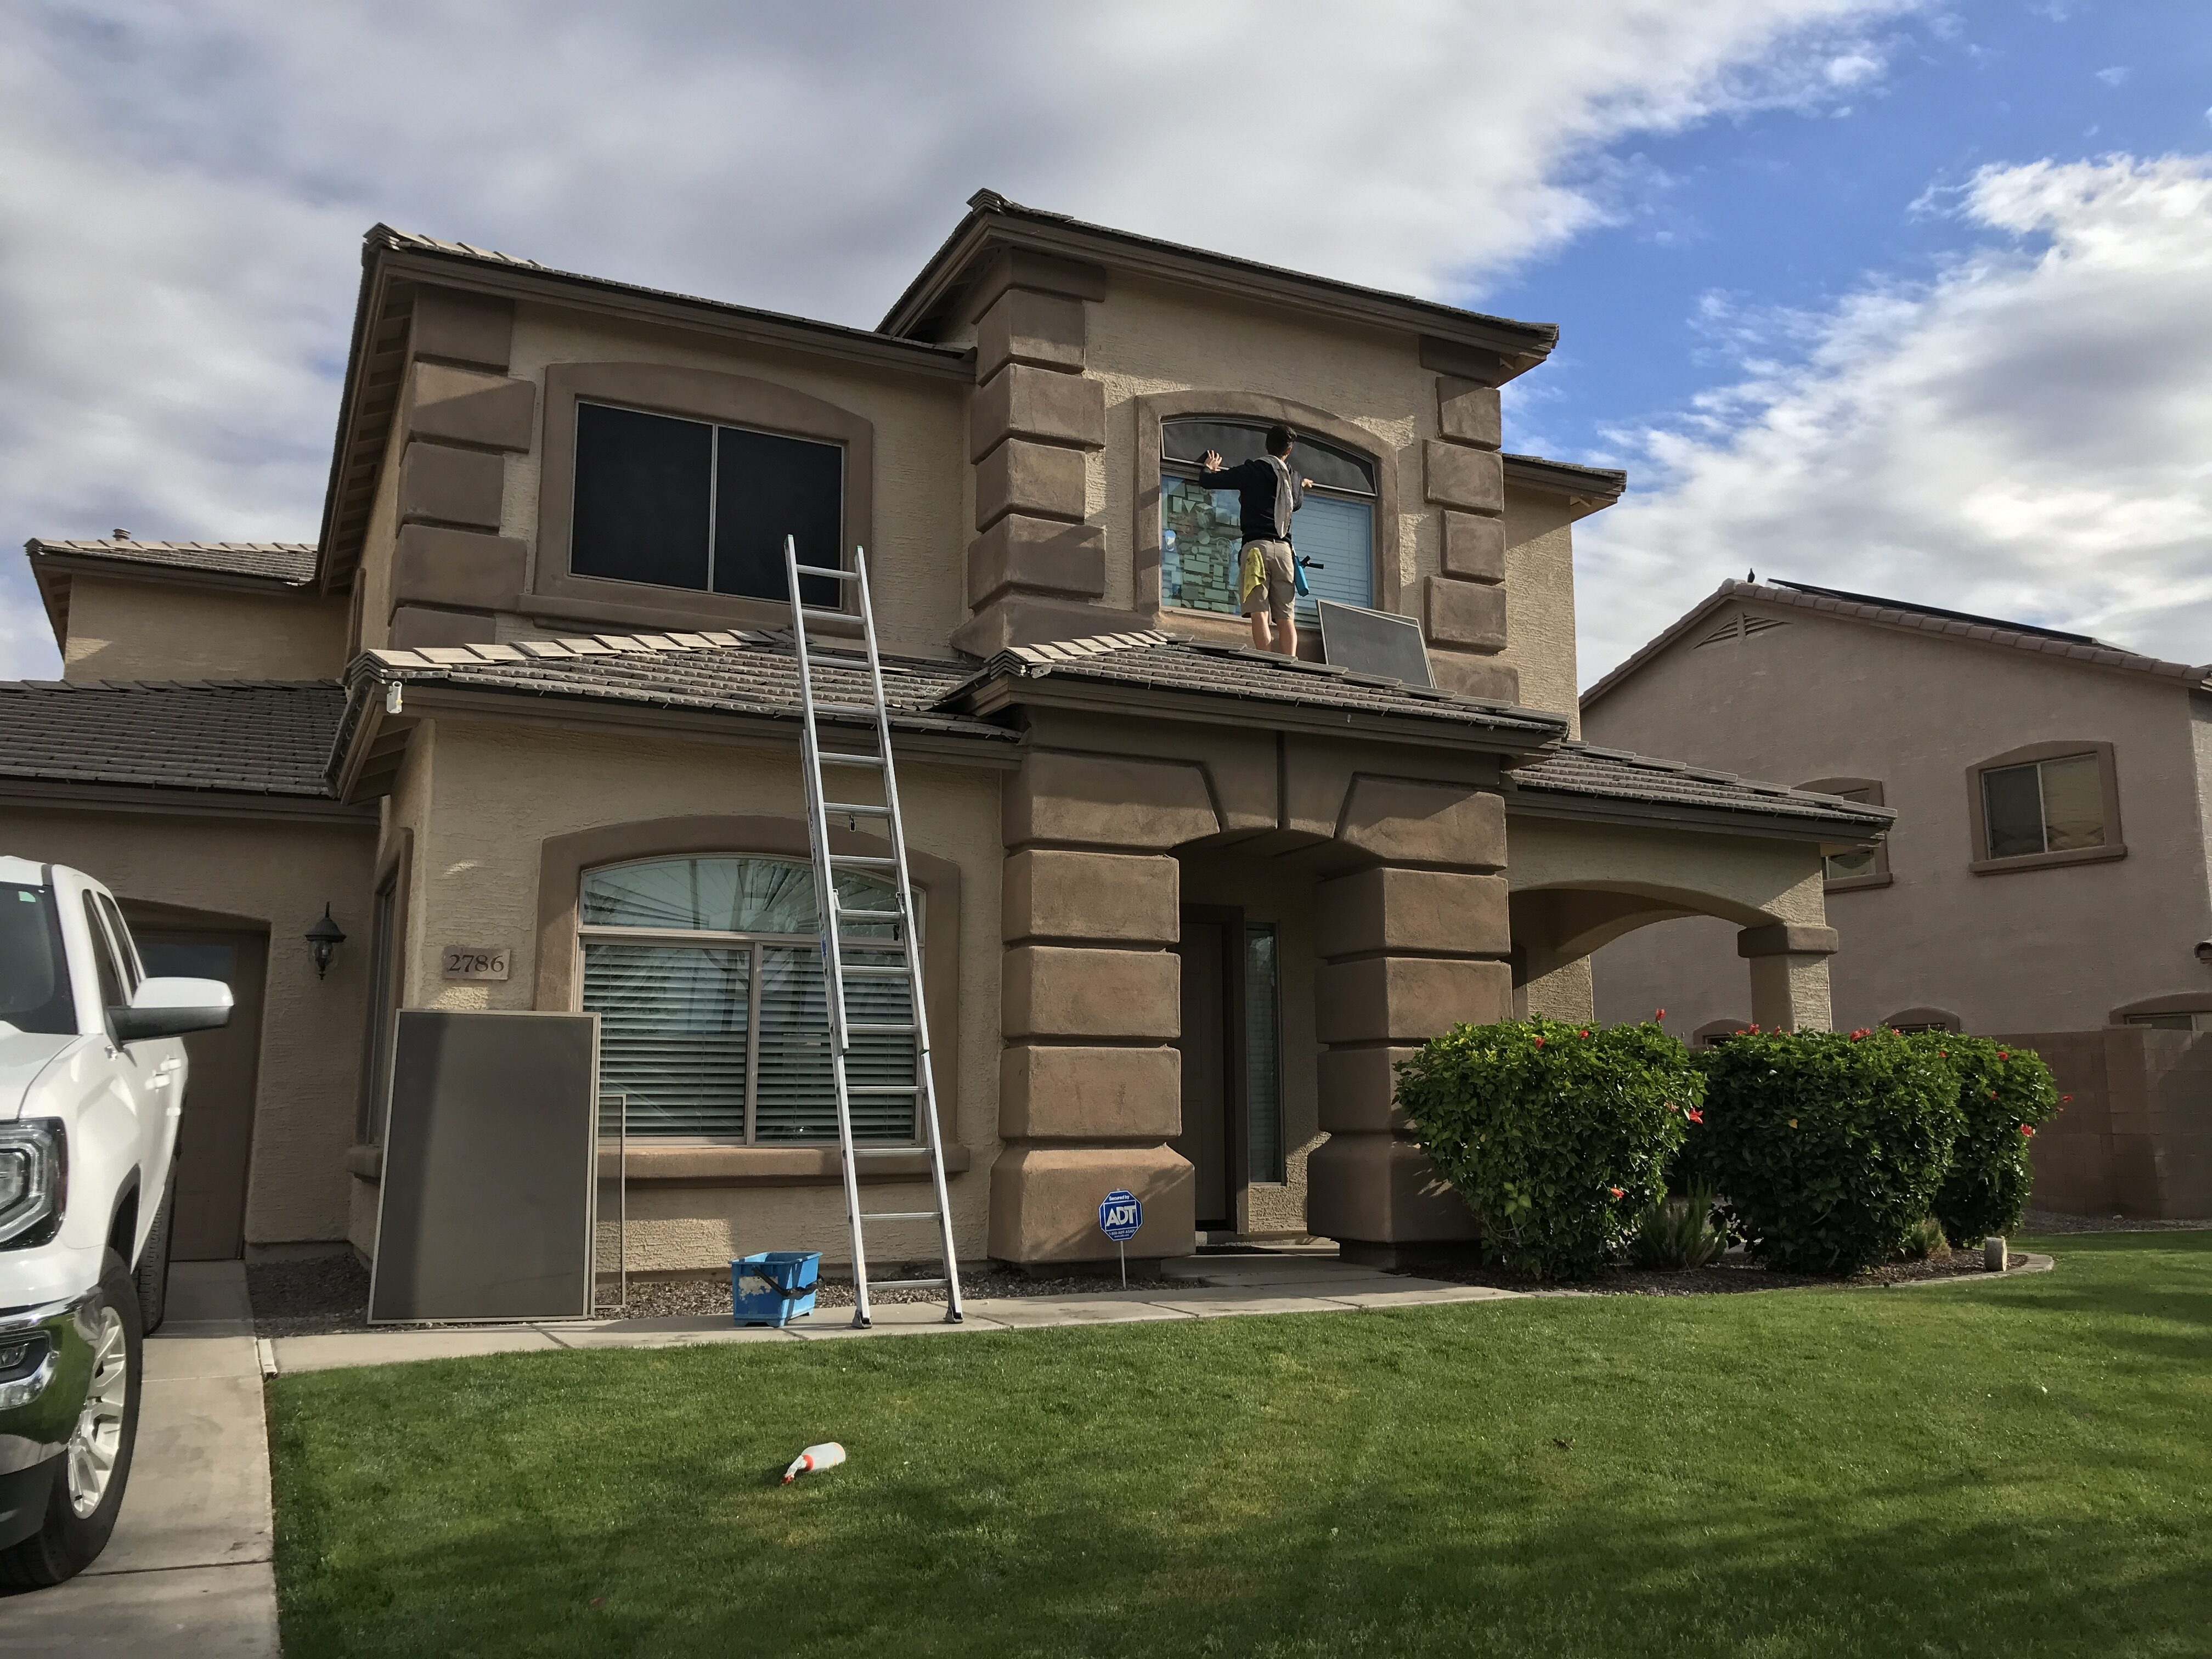 Sun Screen Cleaning in Gilbert, Arizona